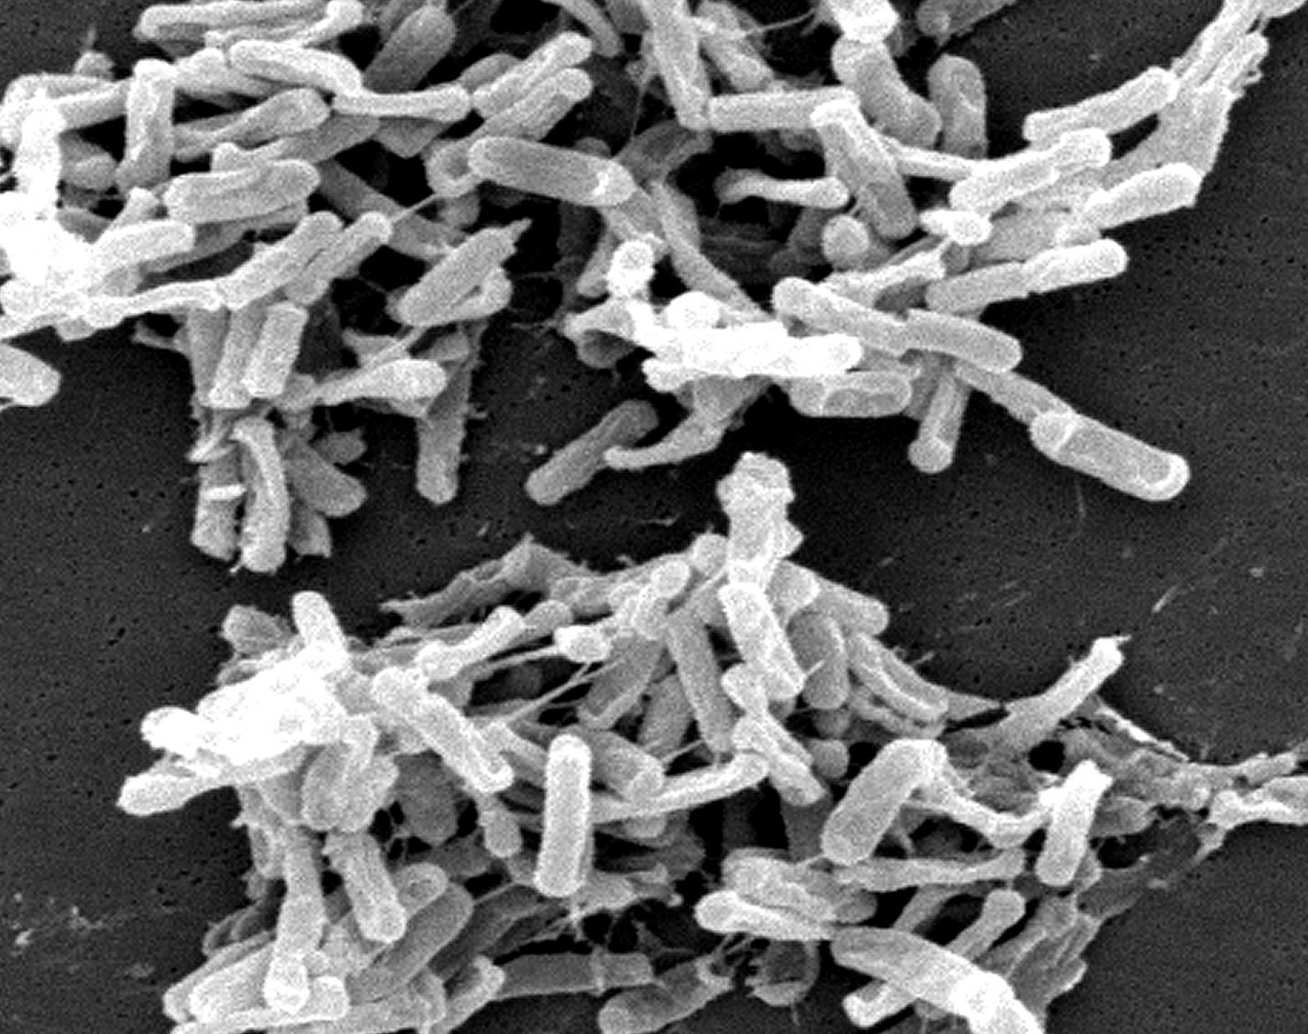 An electron micrograph of C. diff